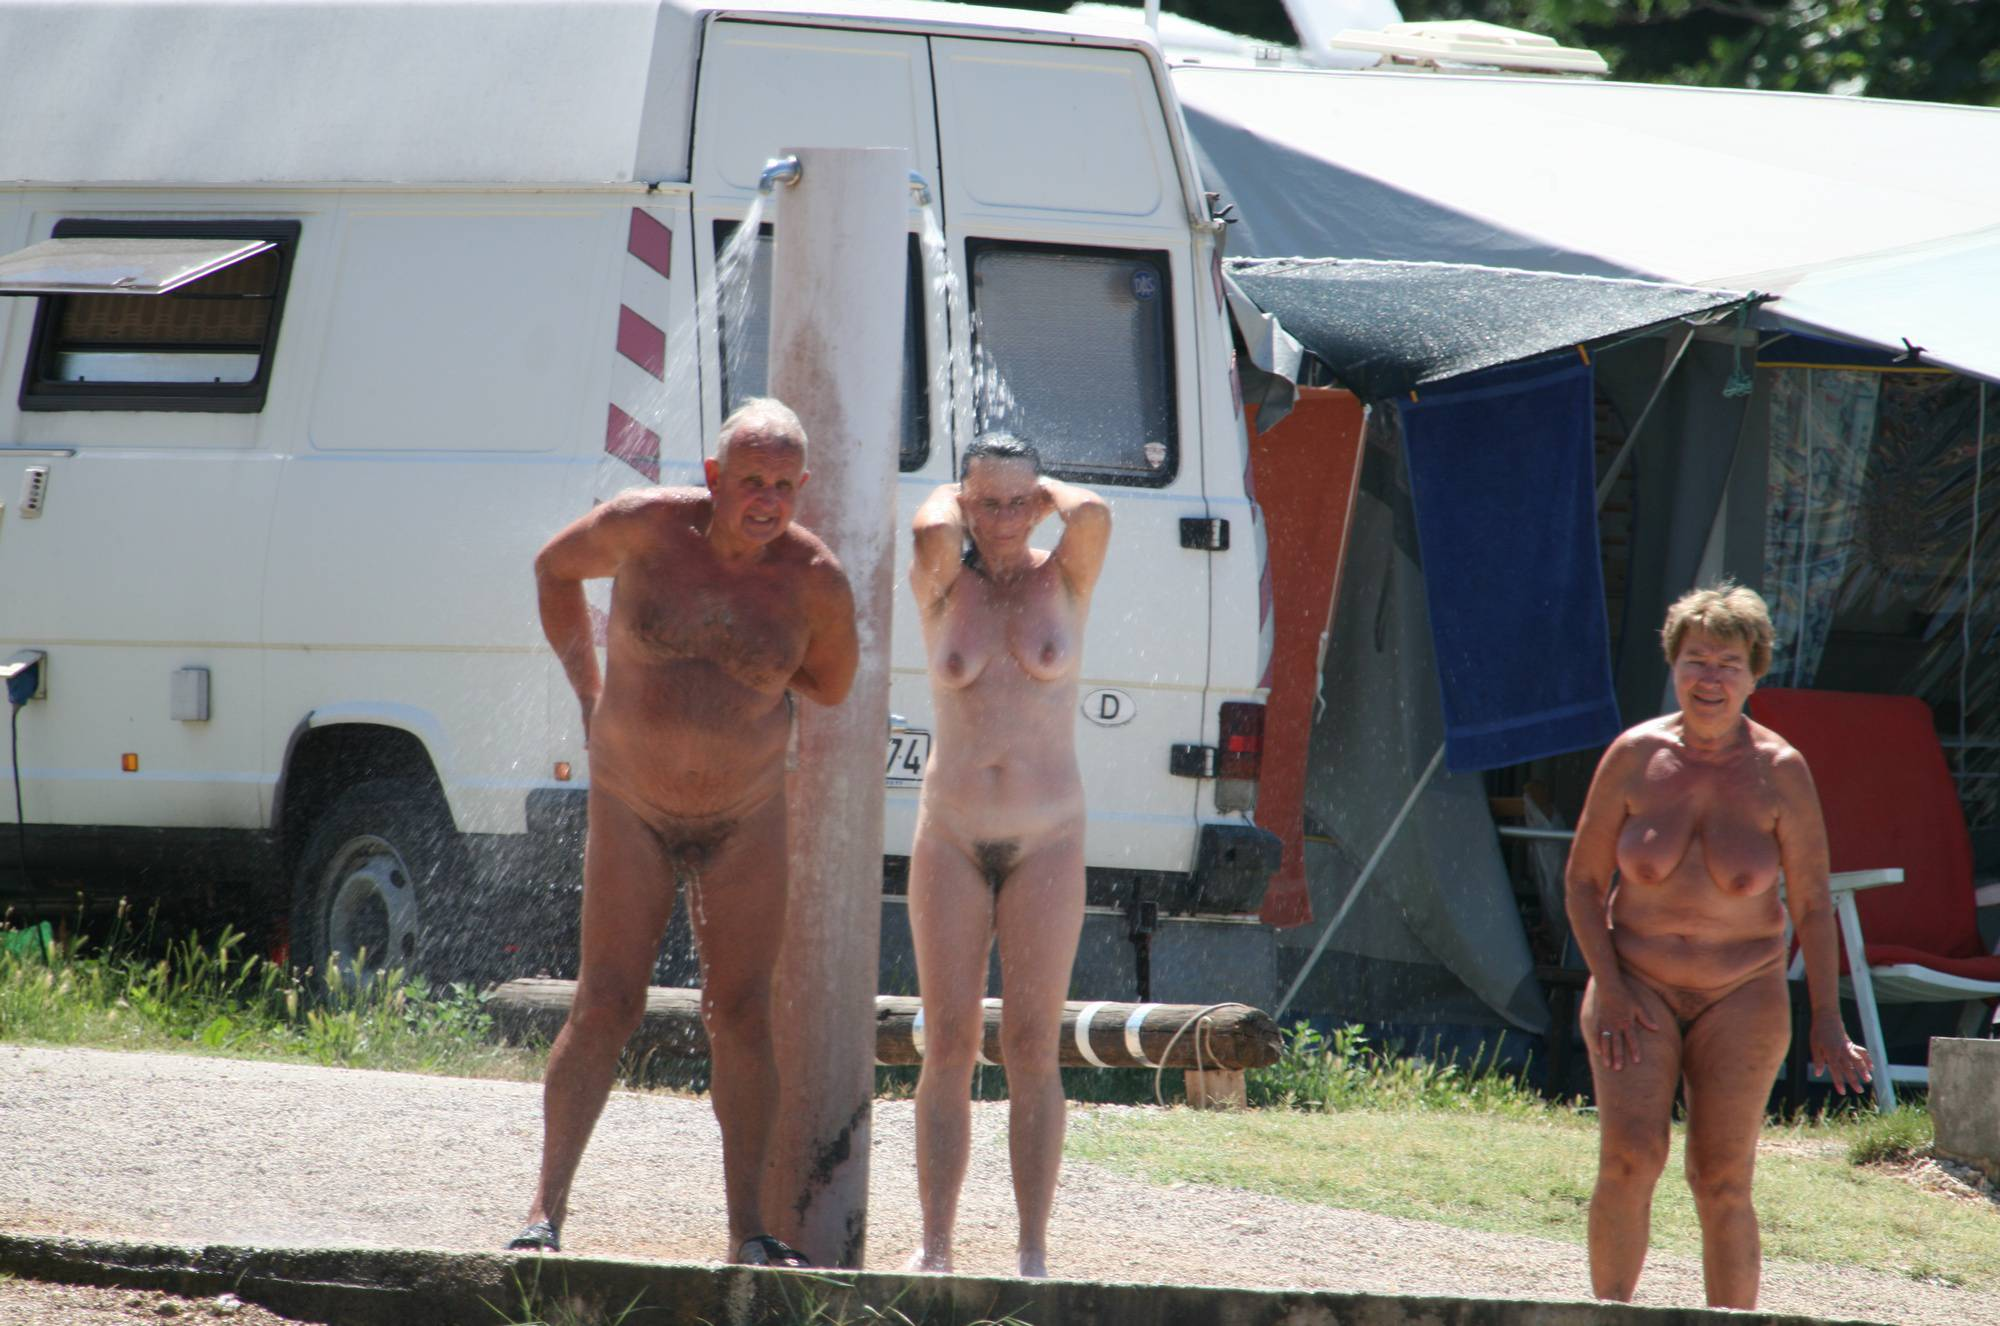 Nudist Pics RV-Park Zoom Beach View - 1